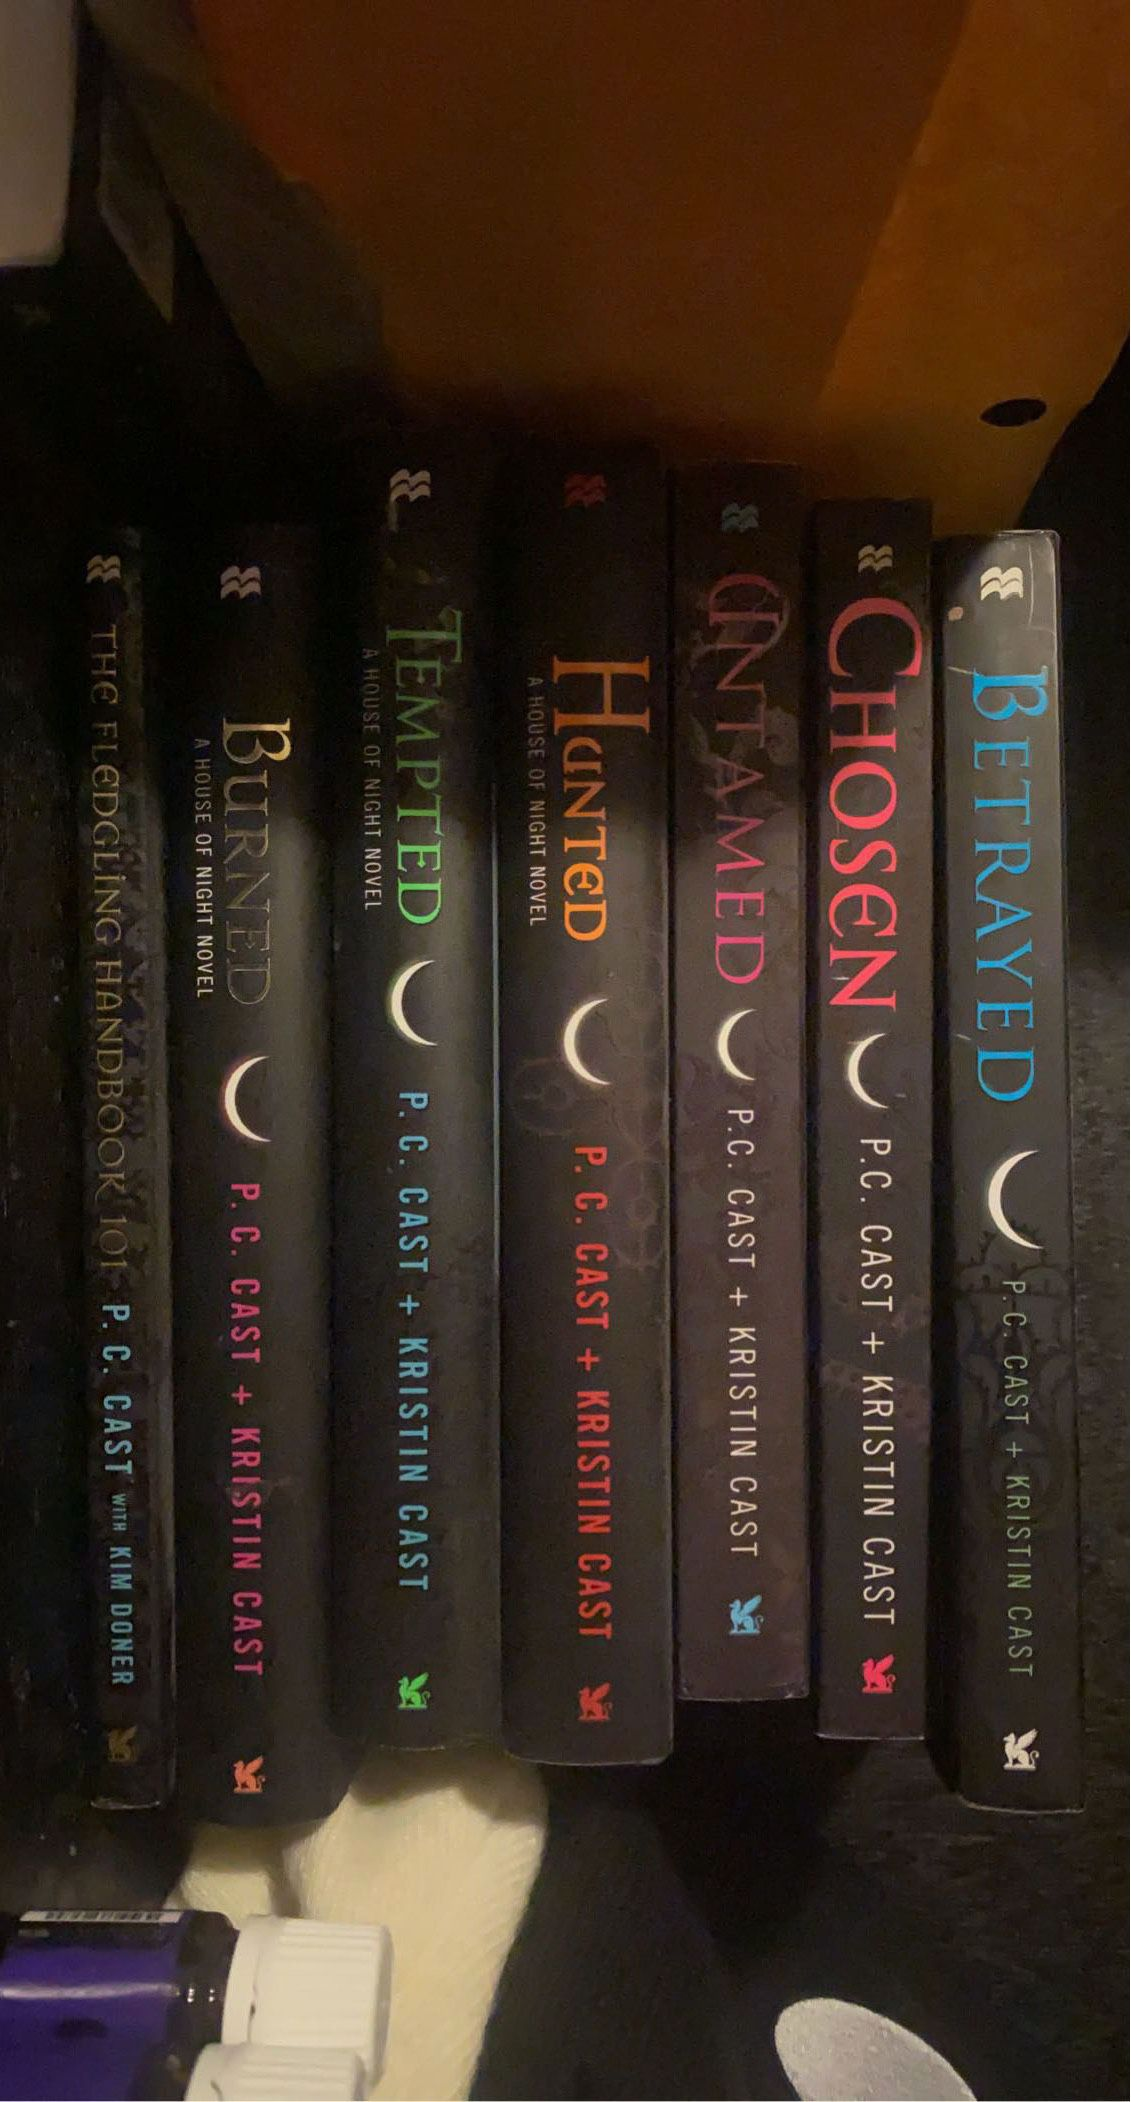 7 Different Series And 5 Individual Books